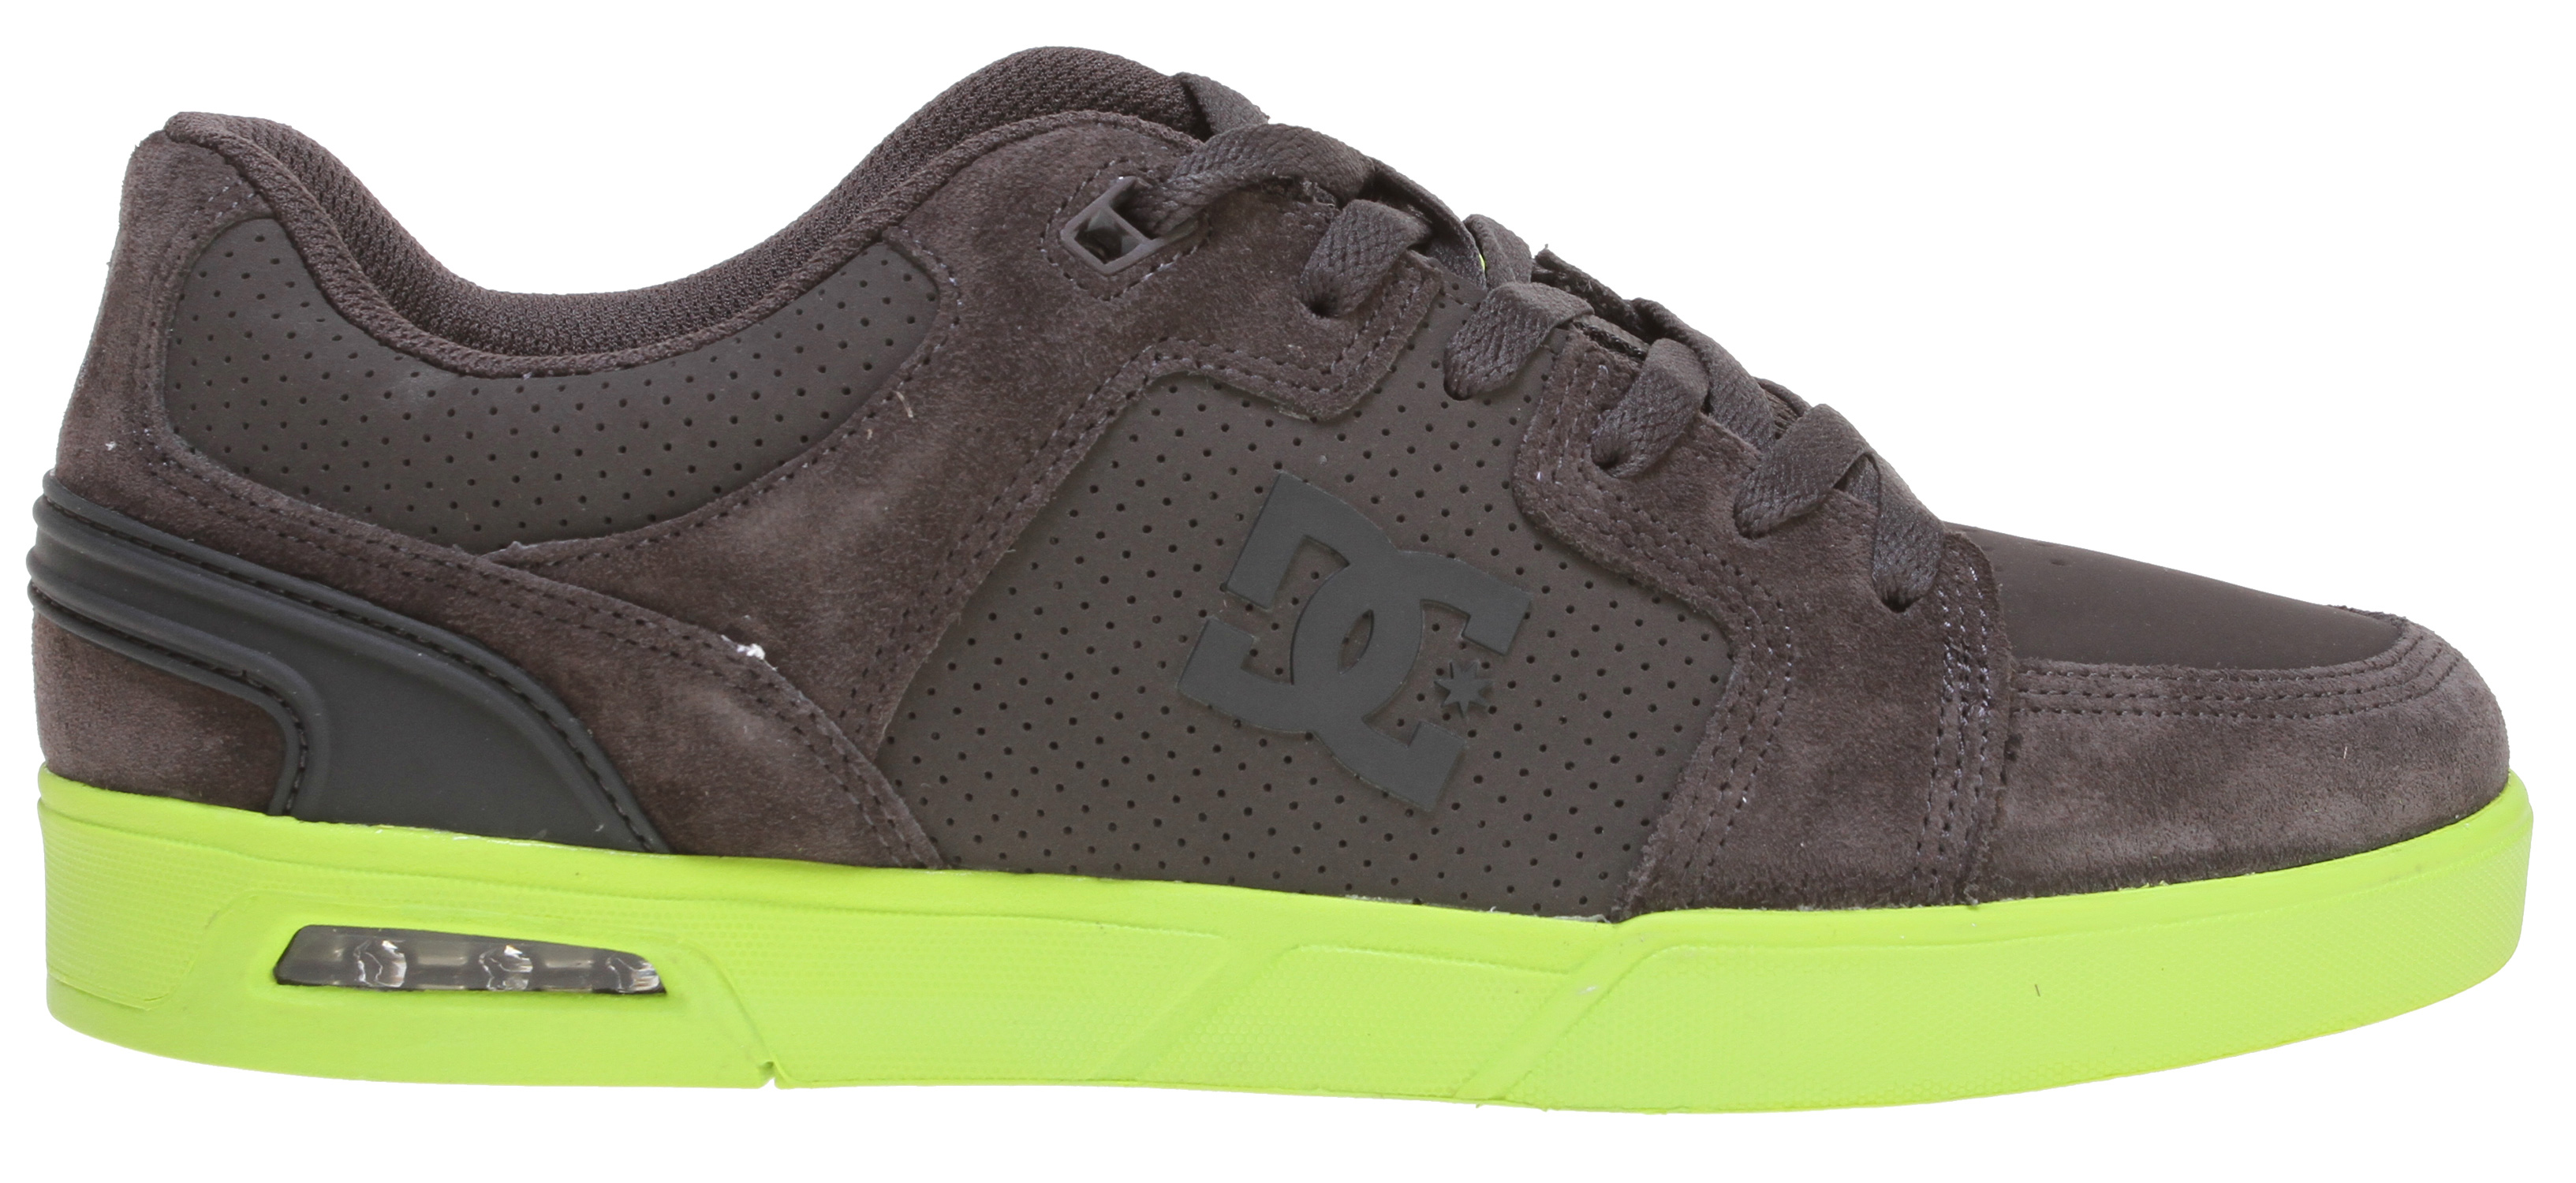 Skateboard Key Features of the DC Monty Skate Shoes: Clean cupsole construction with visible heel airbag Traditional skate paneling in the upper Foam padded tongue and collar for added comfort Molded heel counter for support and style - $44.95